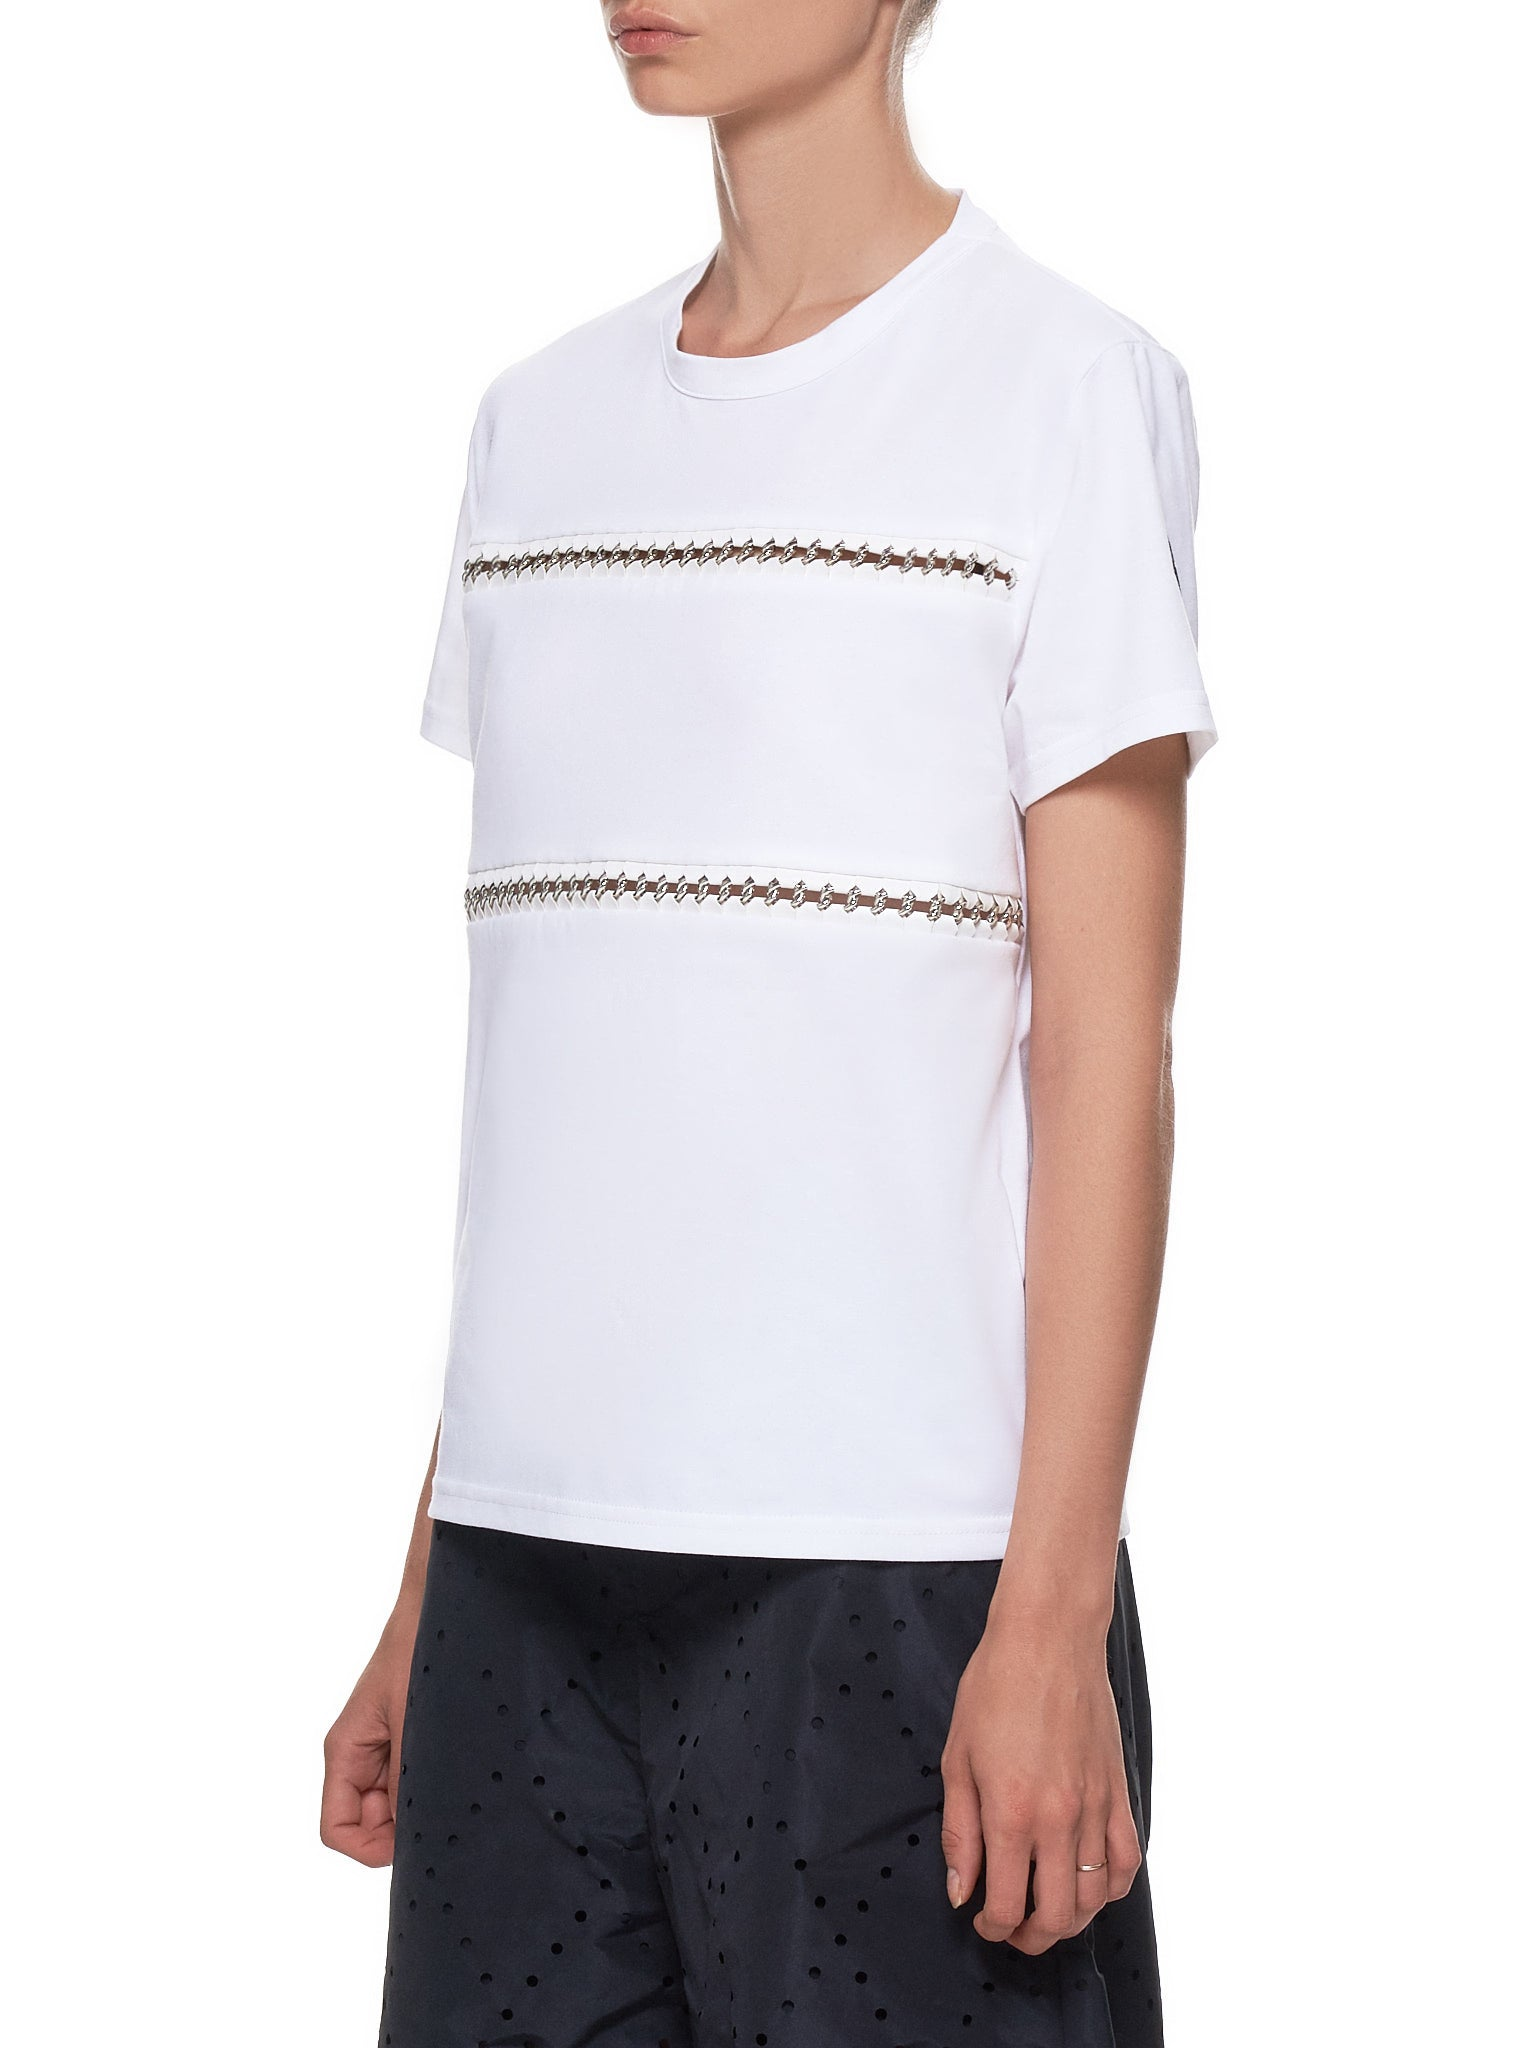 Chain Link T-Shirt (E1-09F-80526-00-829EE-WHITE)